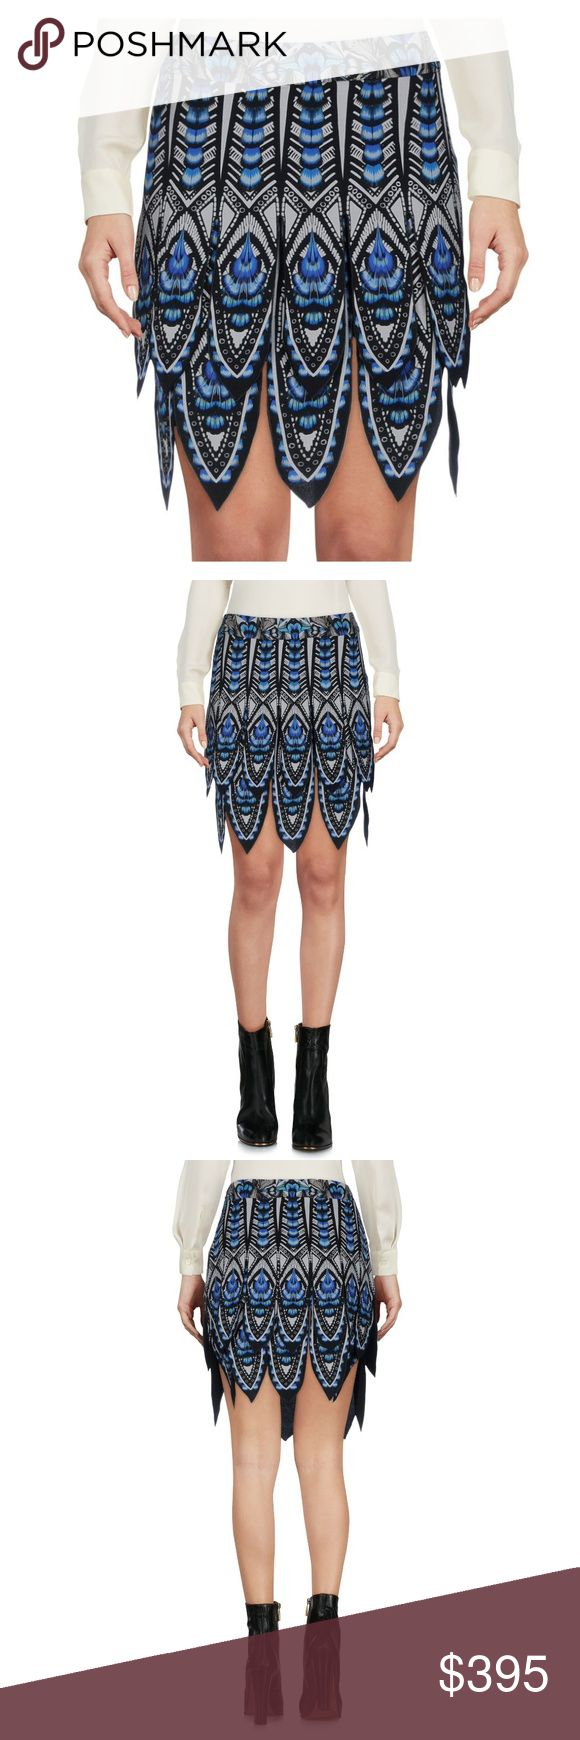 Feather Print Silk Car Wash Fringe Miniskirt 4 New with tag in perfect conditon, Authentic Roberto cavalli runway blue feather print mini skirt.  Sz it40 or us4 15.6 inches long 100% Silk, Dry Clean Only. Details: crepe, multicolor pattern, no pockets, rear closure, hook-and-bar, zip, lined interior, no appliques, skirt *Price Firm* No Offers on this one. Roberto Cavalli Skirts Mini